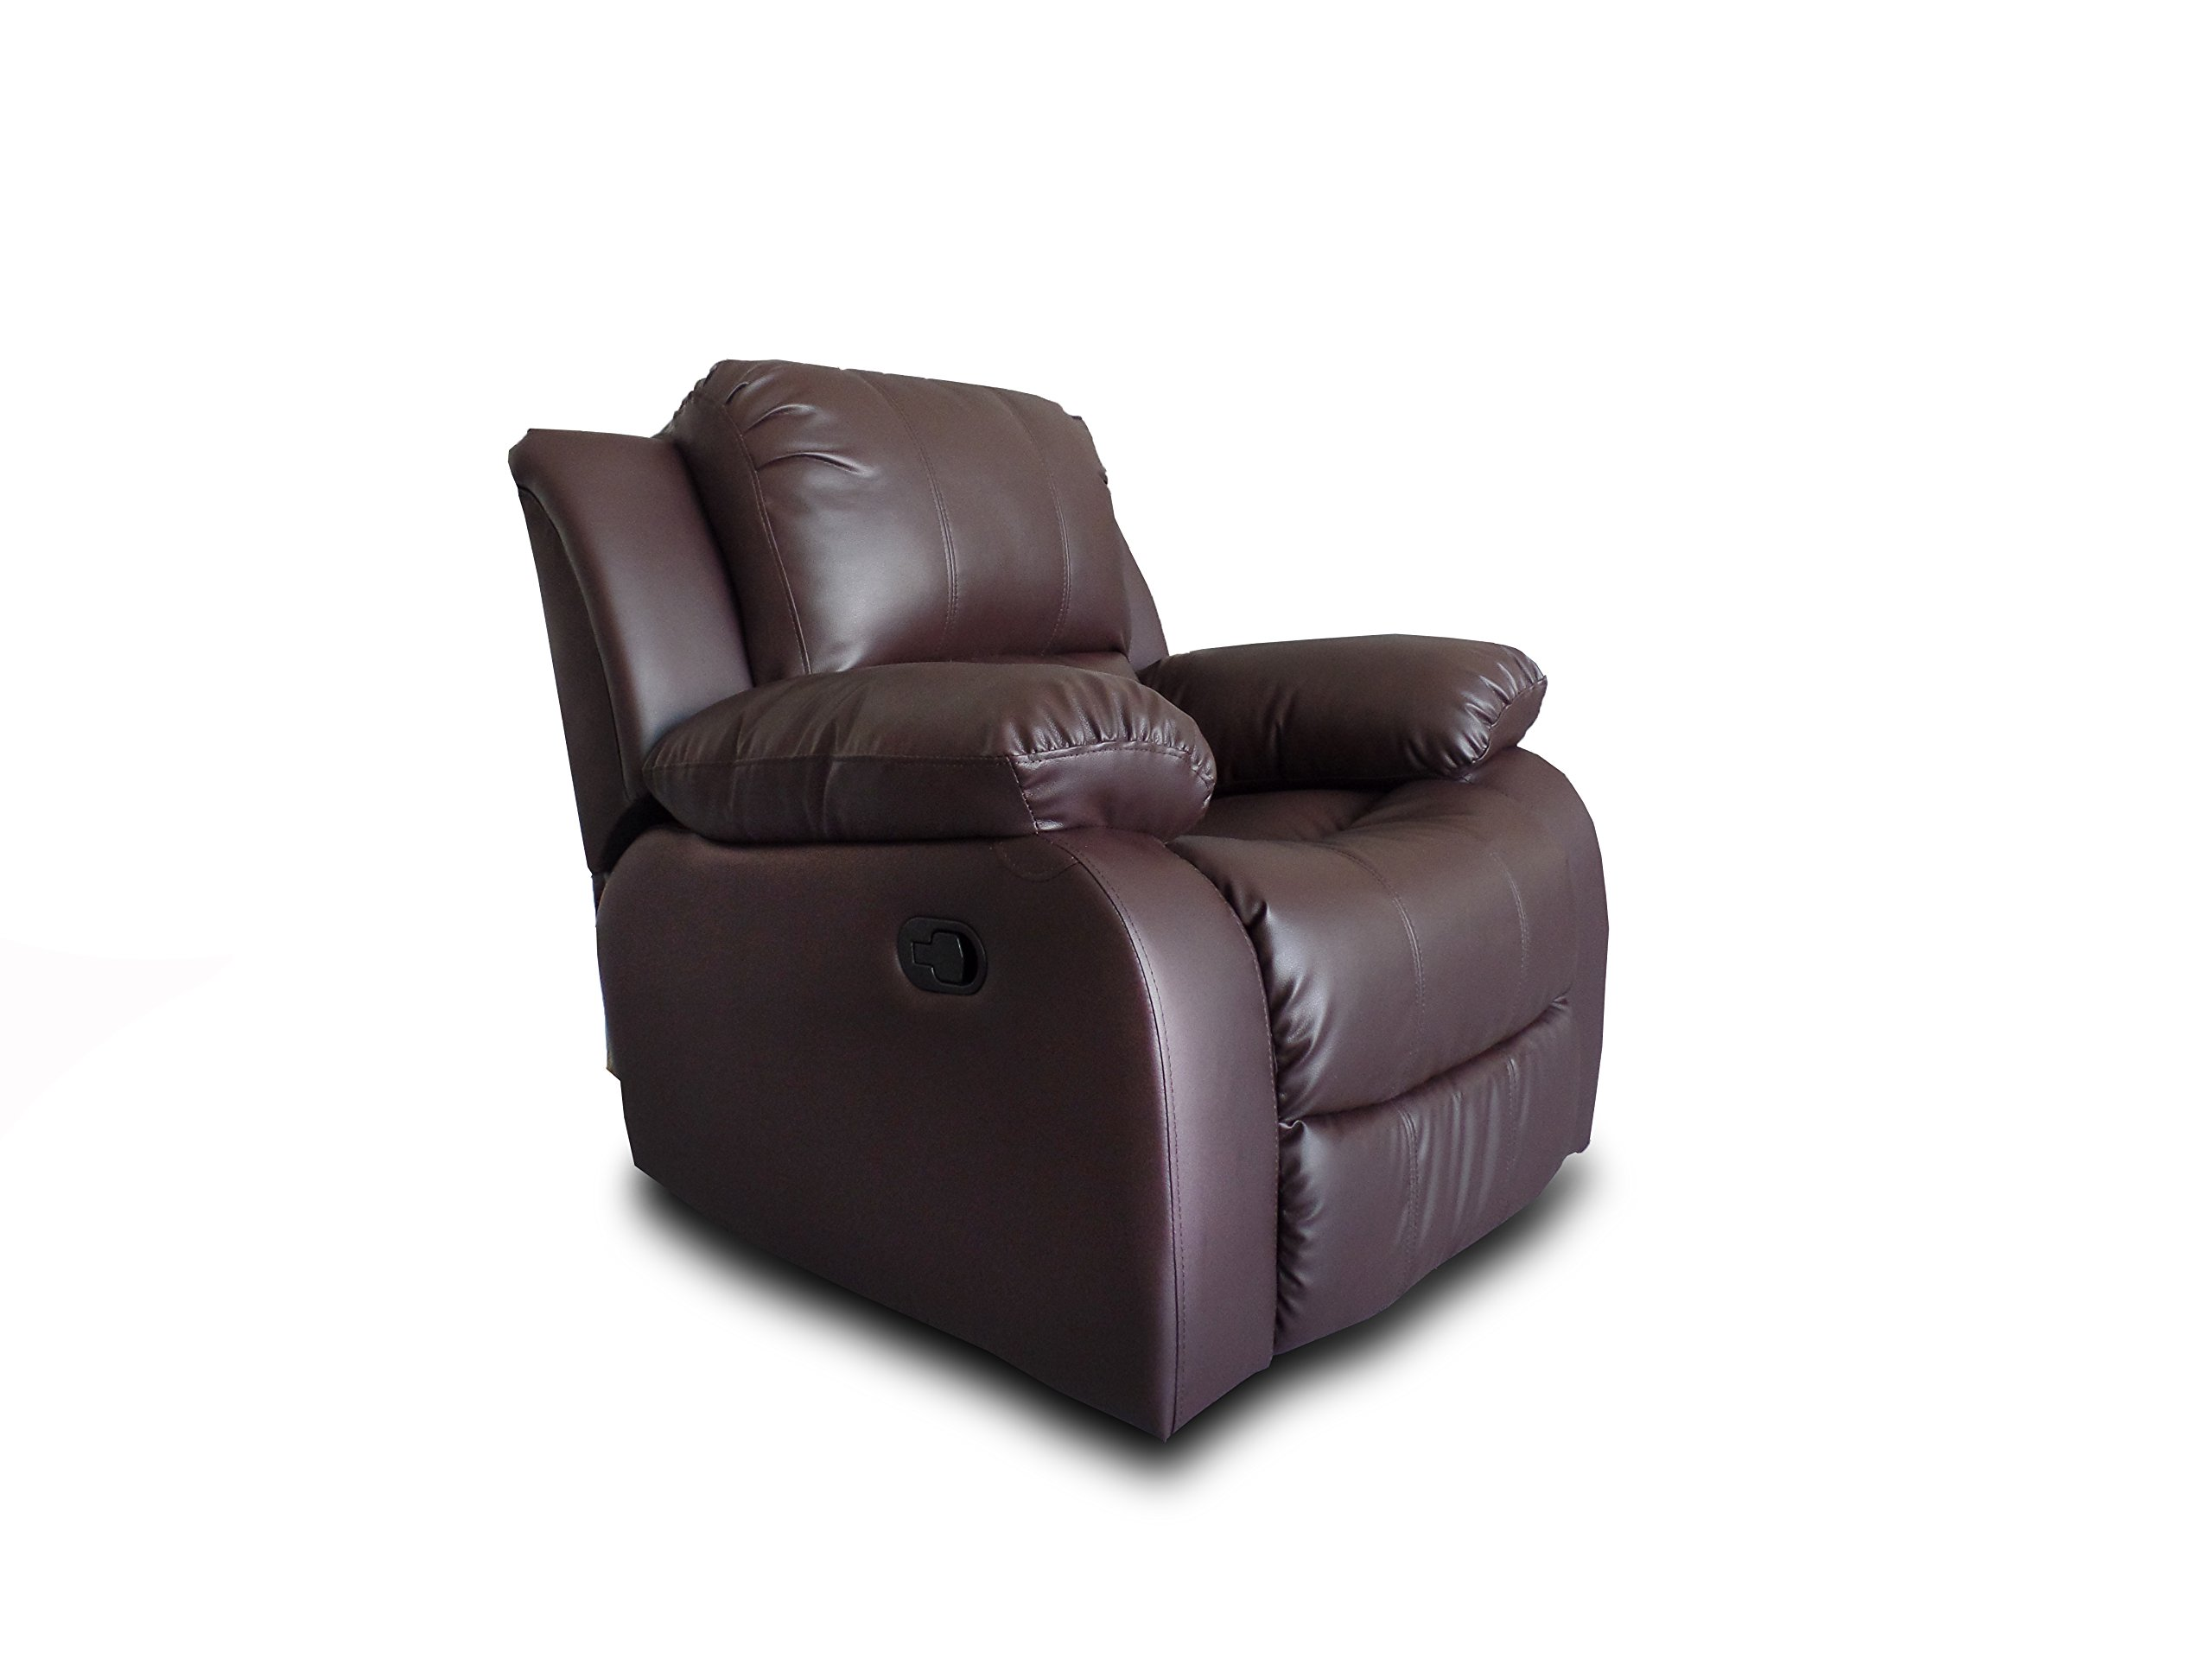 rebel chair a and raw recliner lane leather ottoman